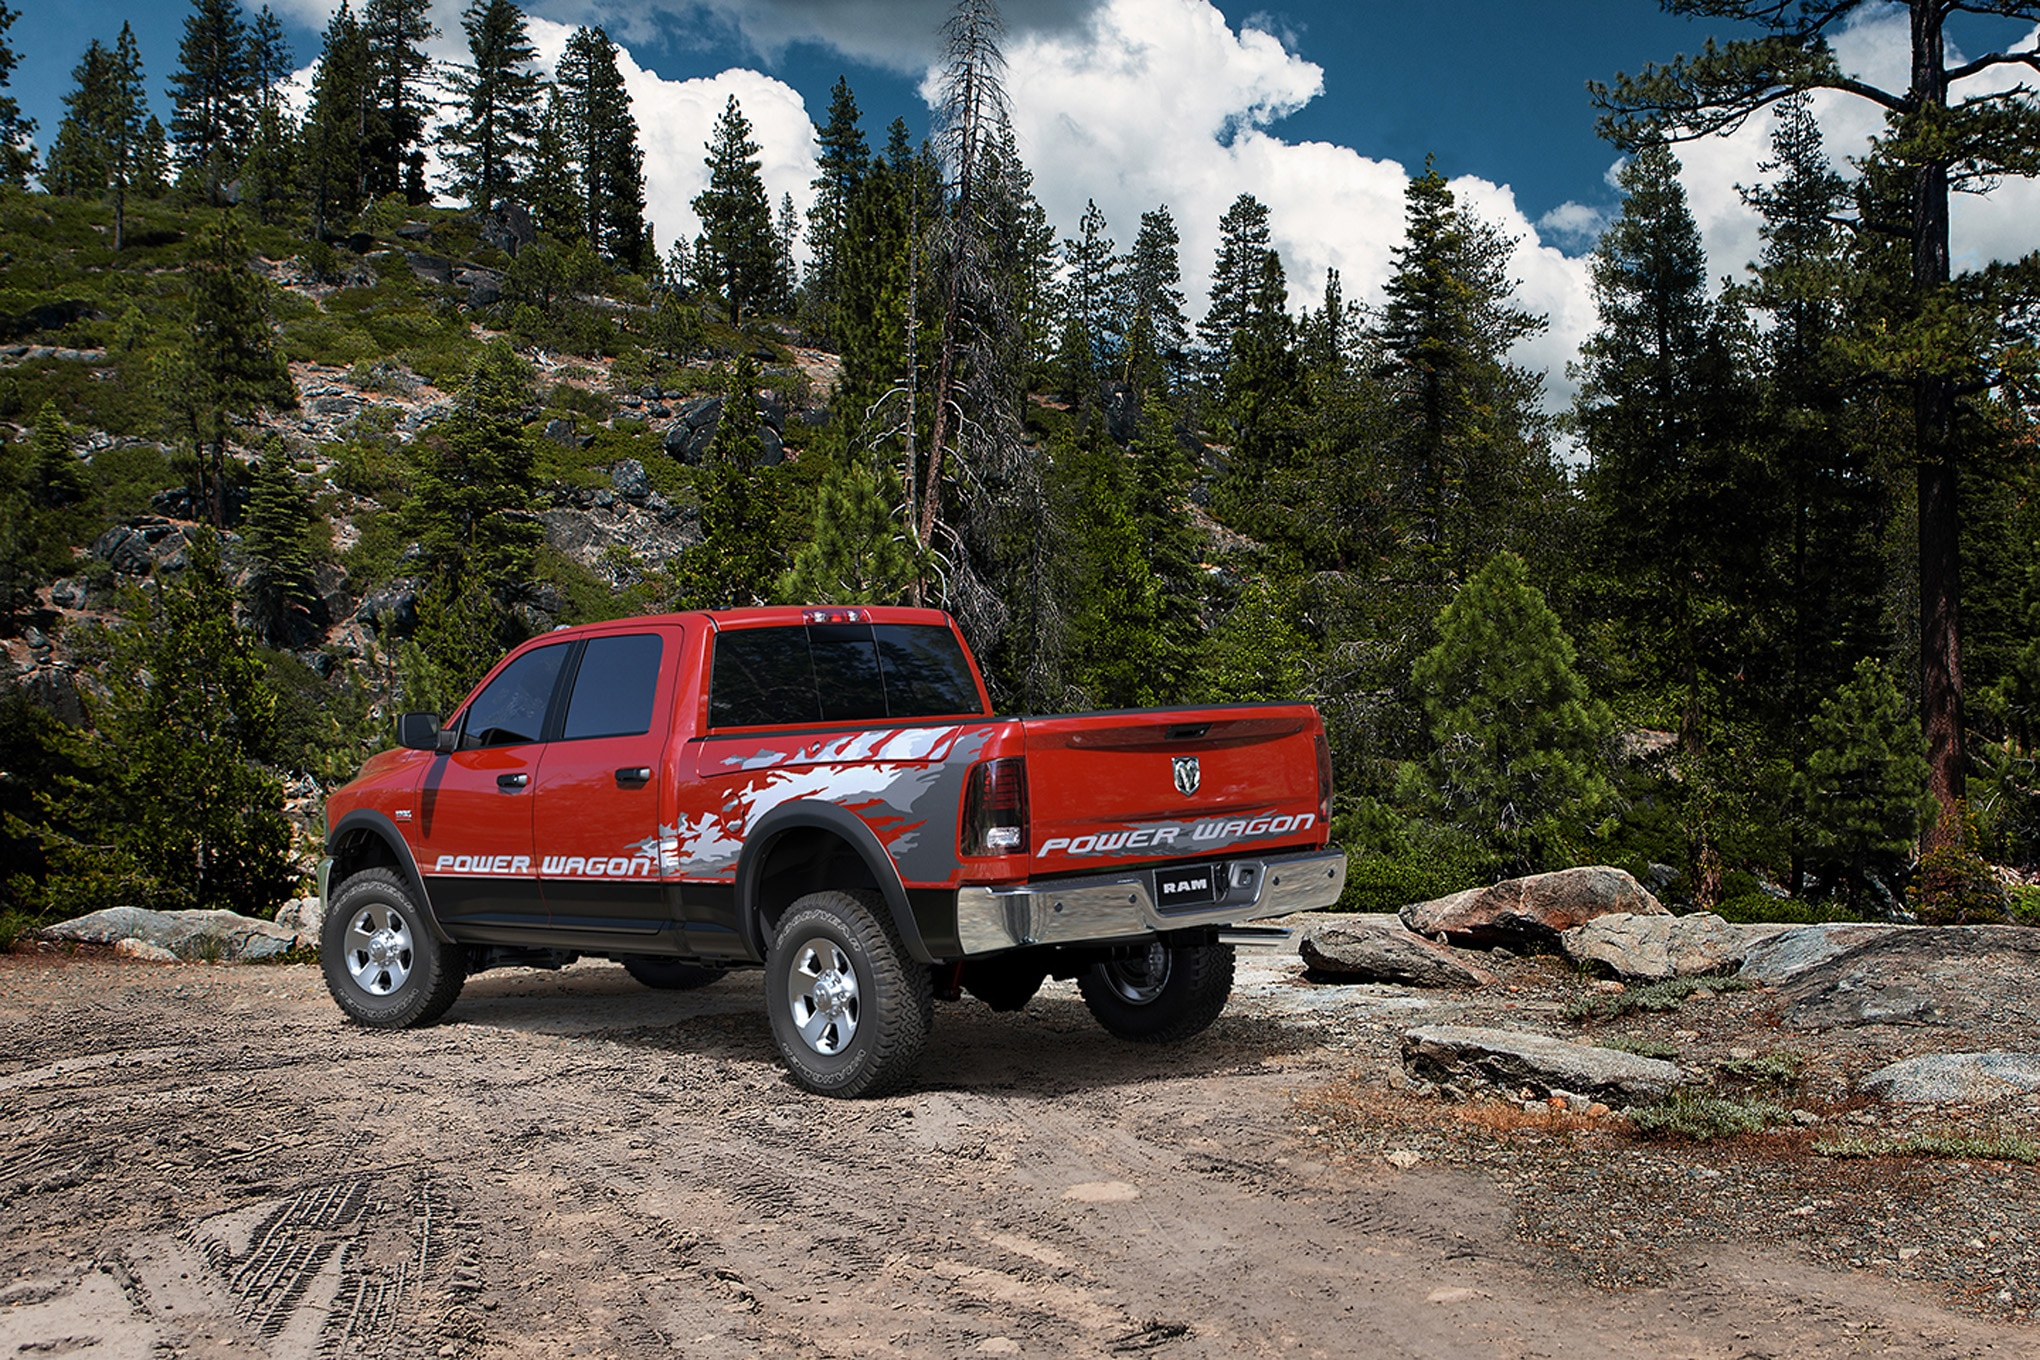 2014 Ram 2500 Power Wagon rear three quarters